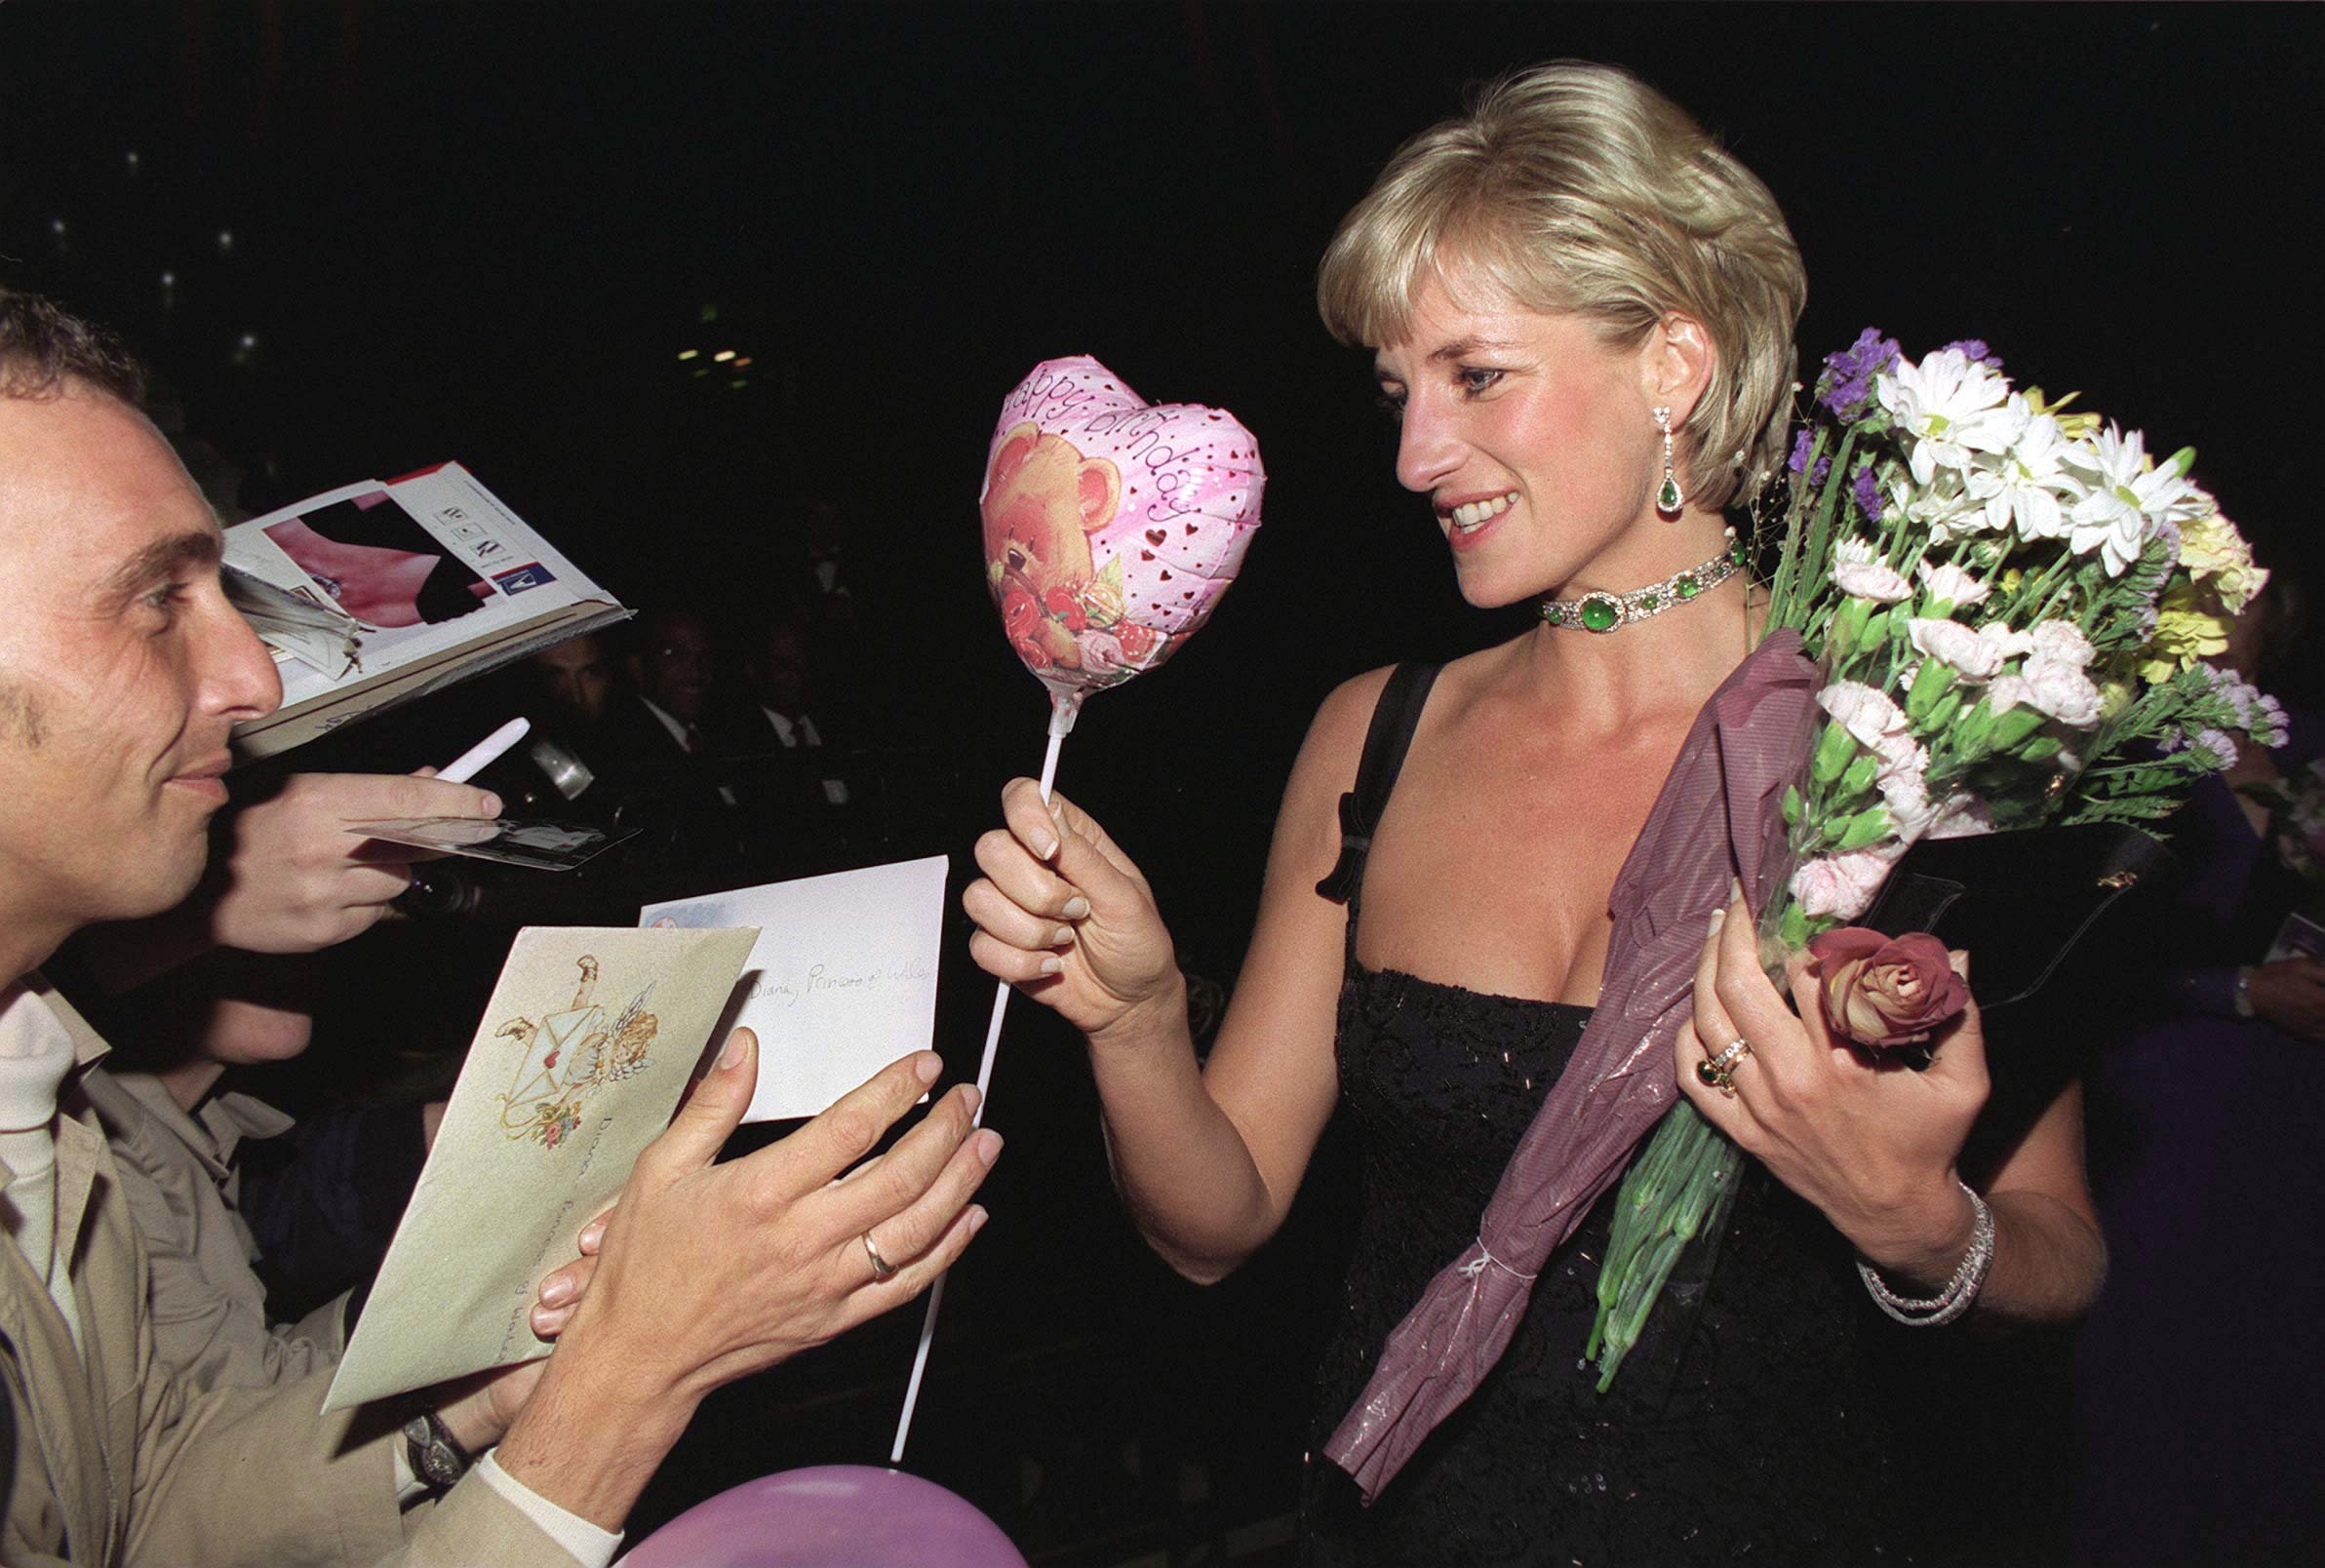 princess diana receiving gifts from fans on her last birthday